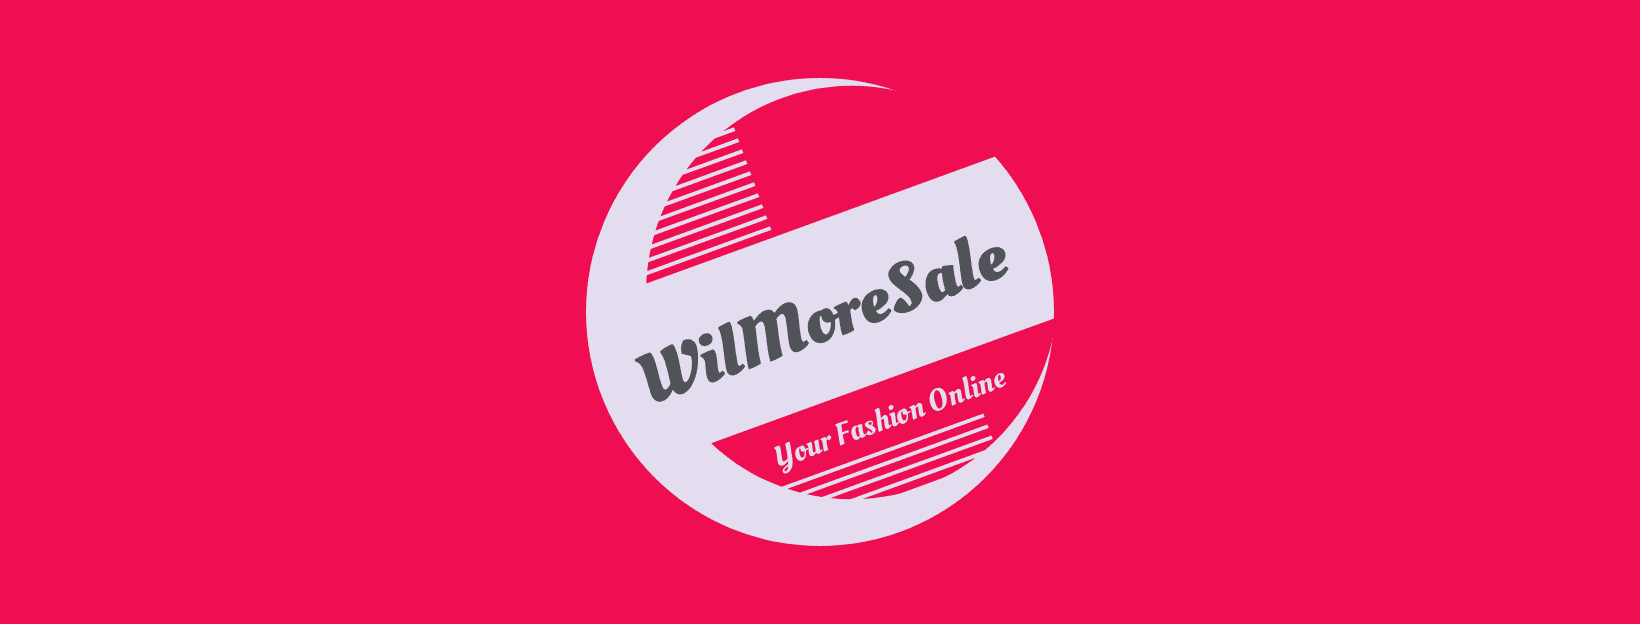 Wilmoresale Your Fashion Online